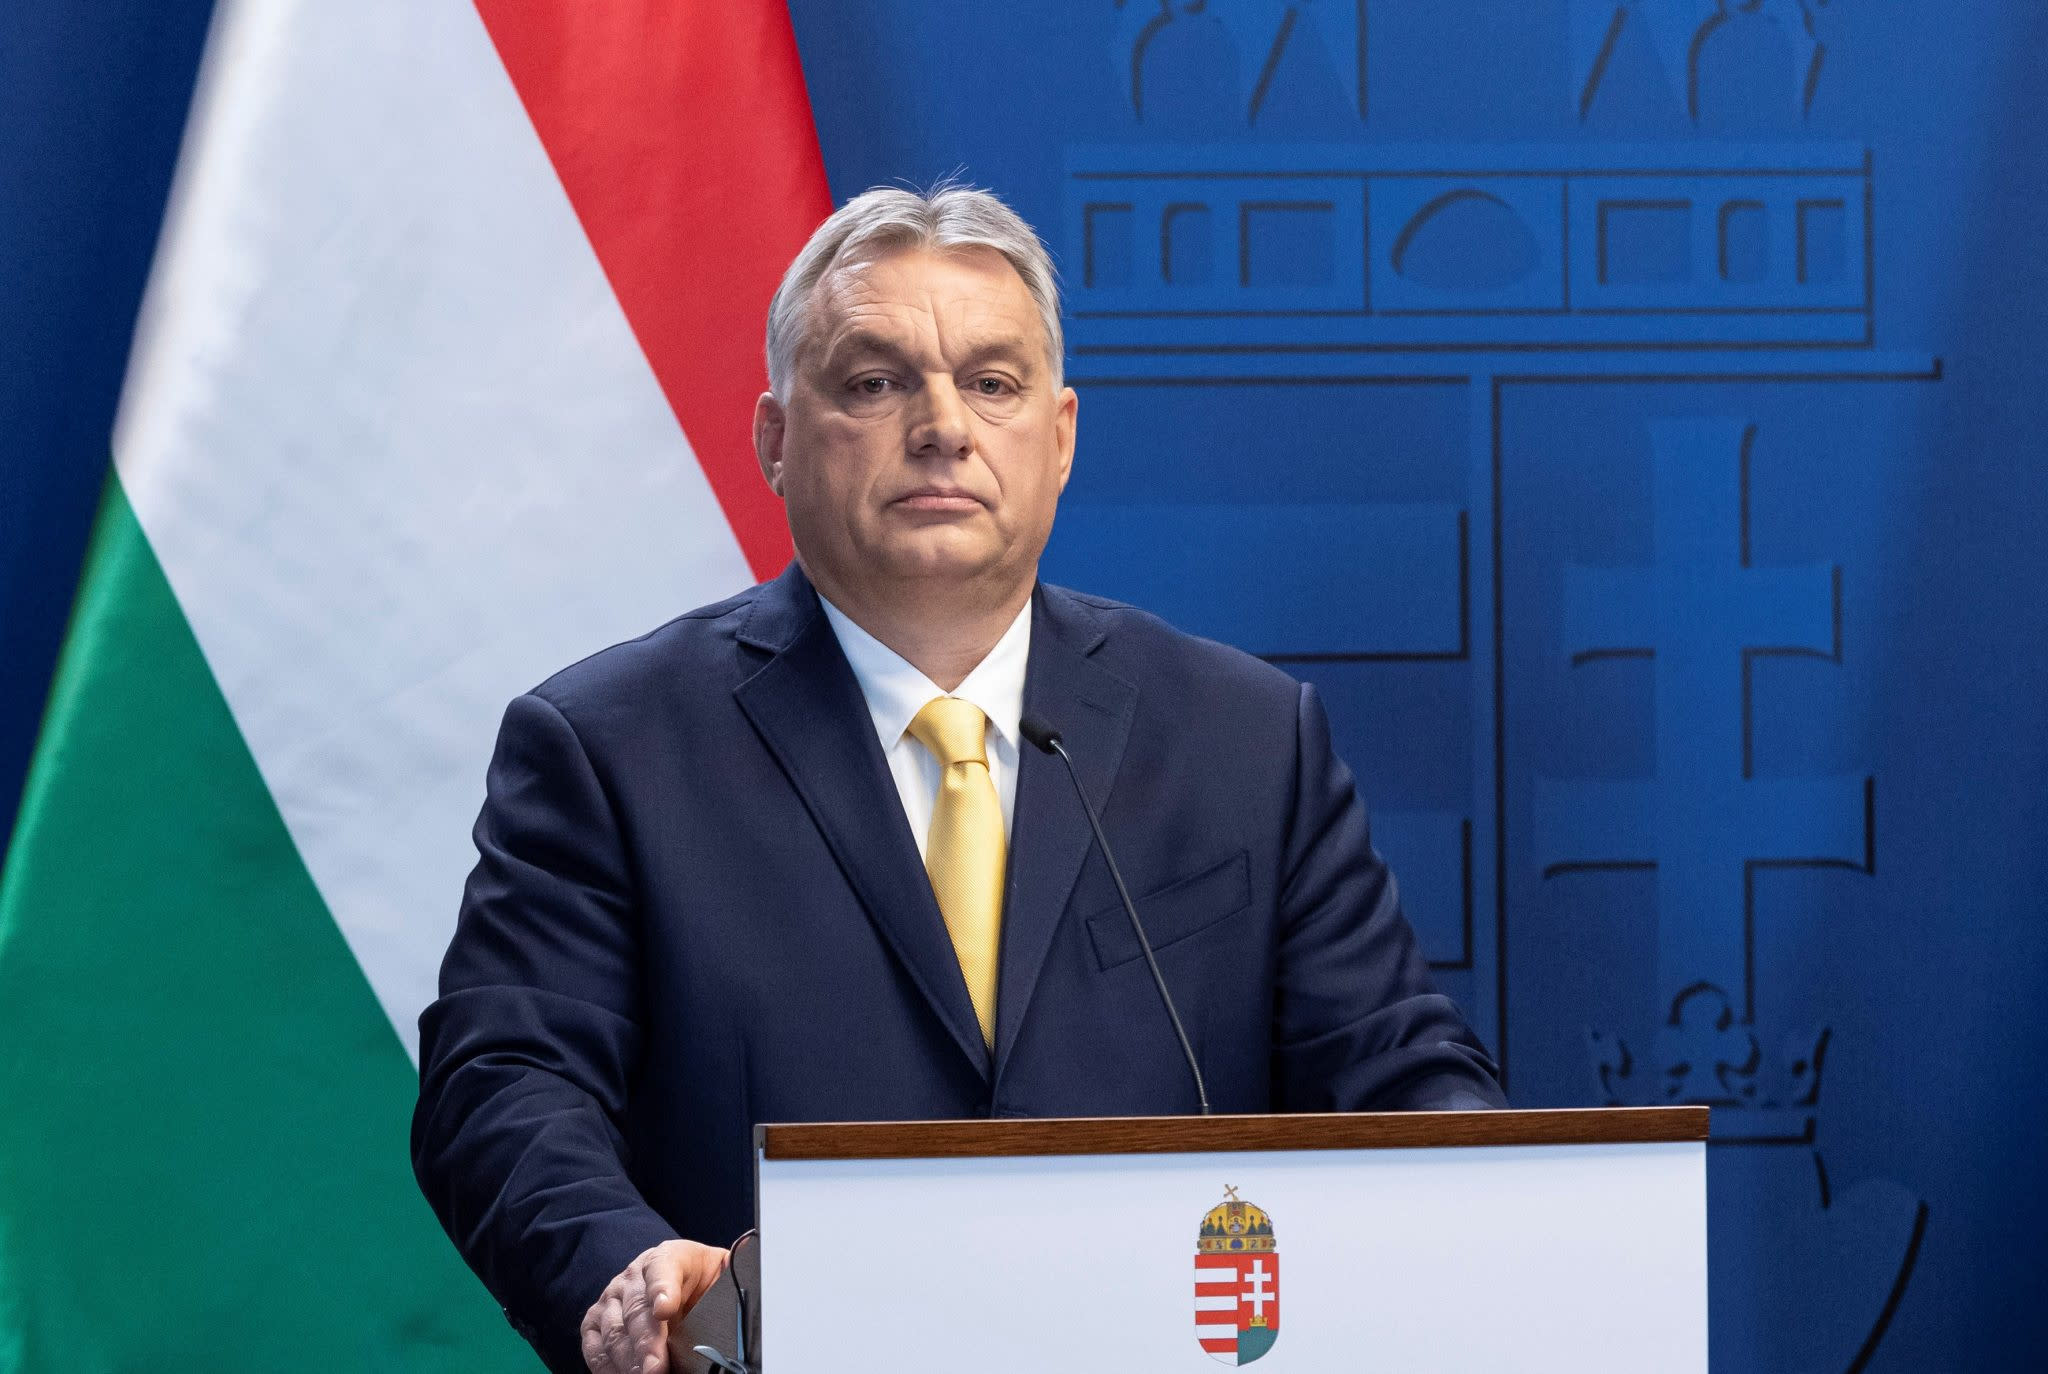 UPDATING Coronavirus – Orbán: Hungary Closes Borders for All Passenger Transport, Gov't Bans All Events